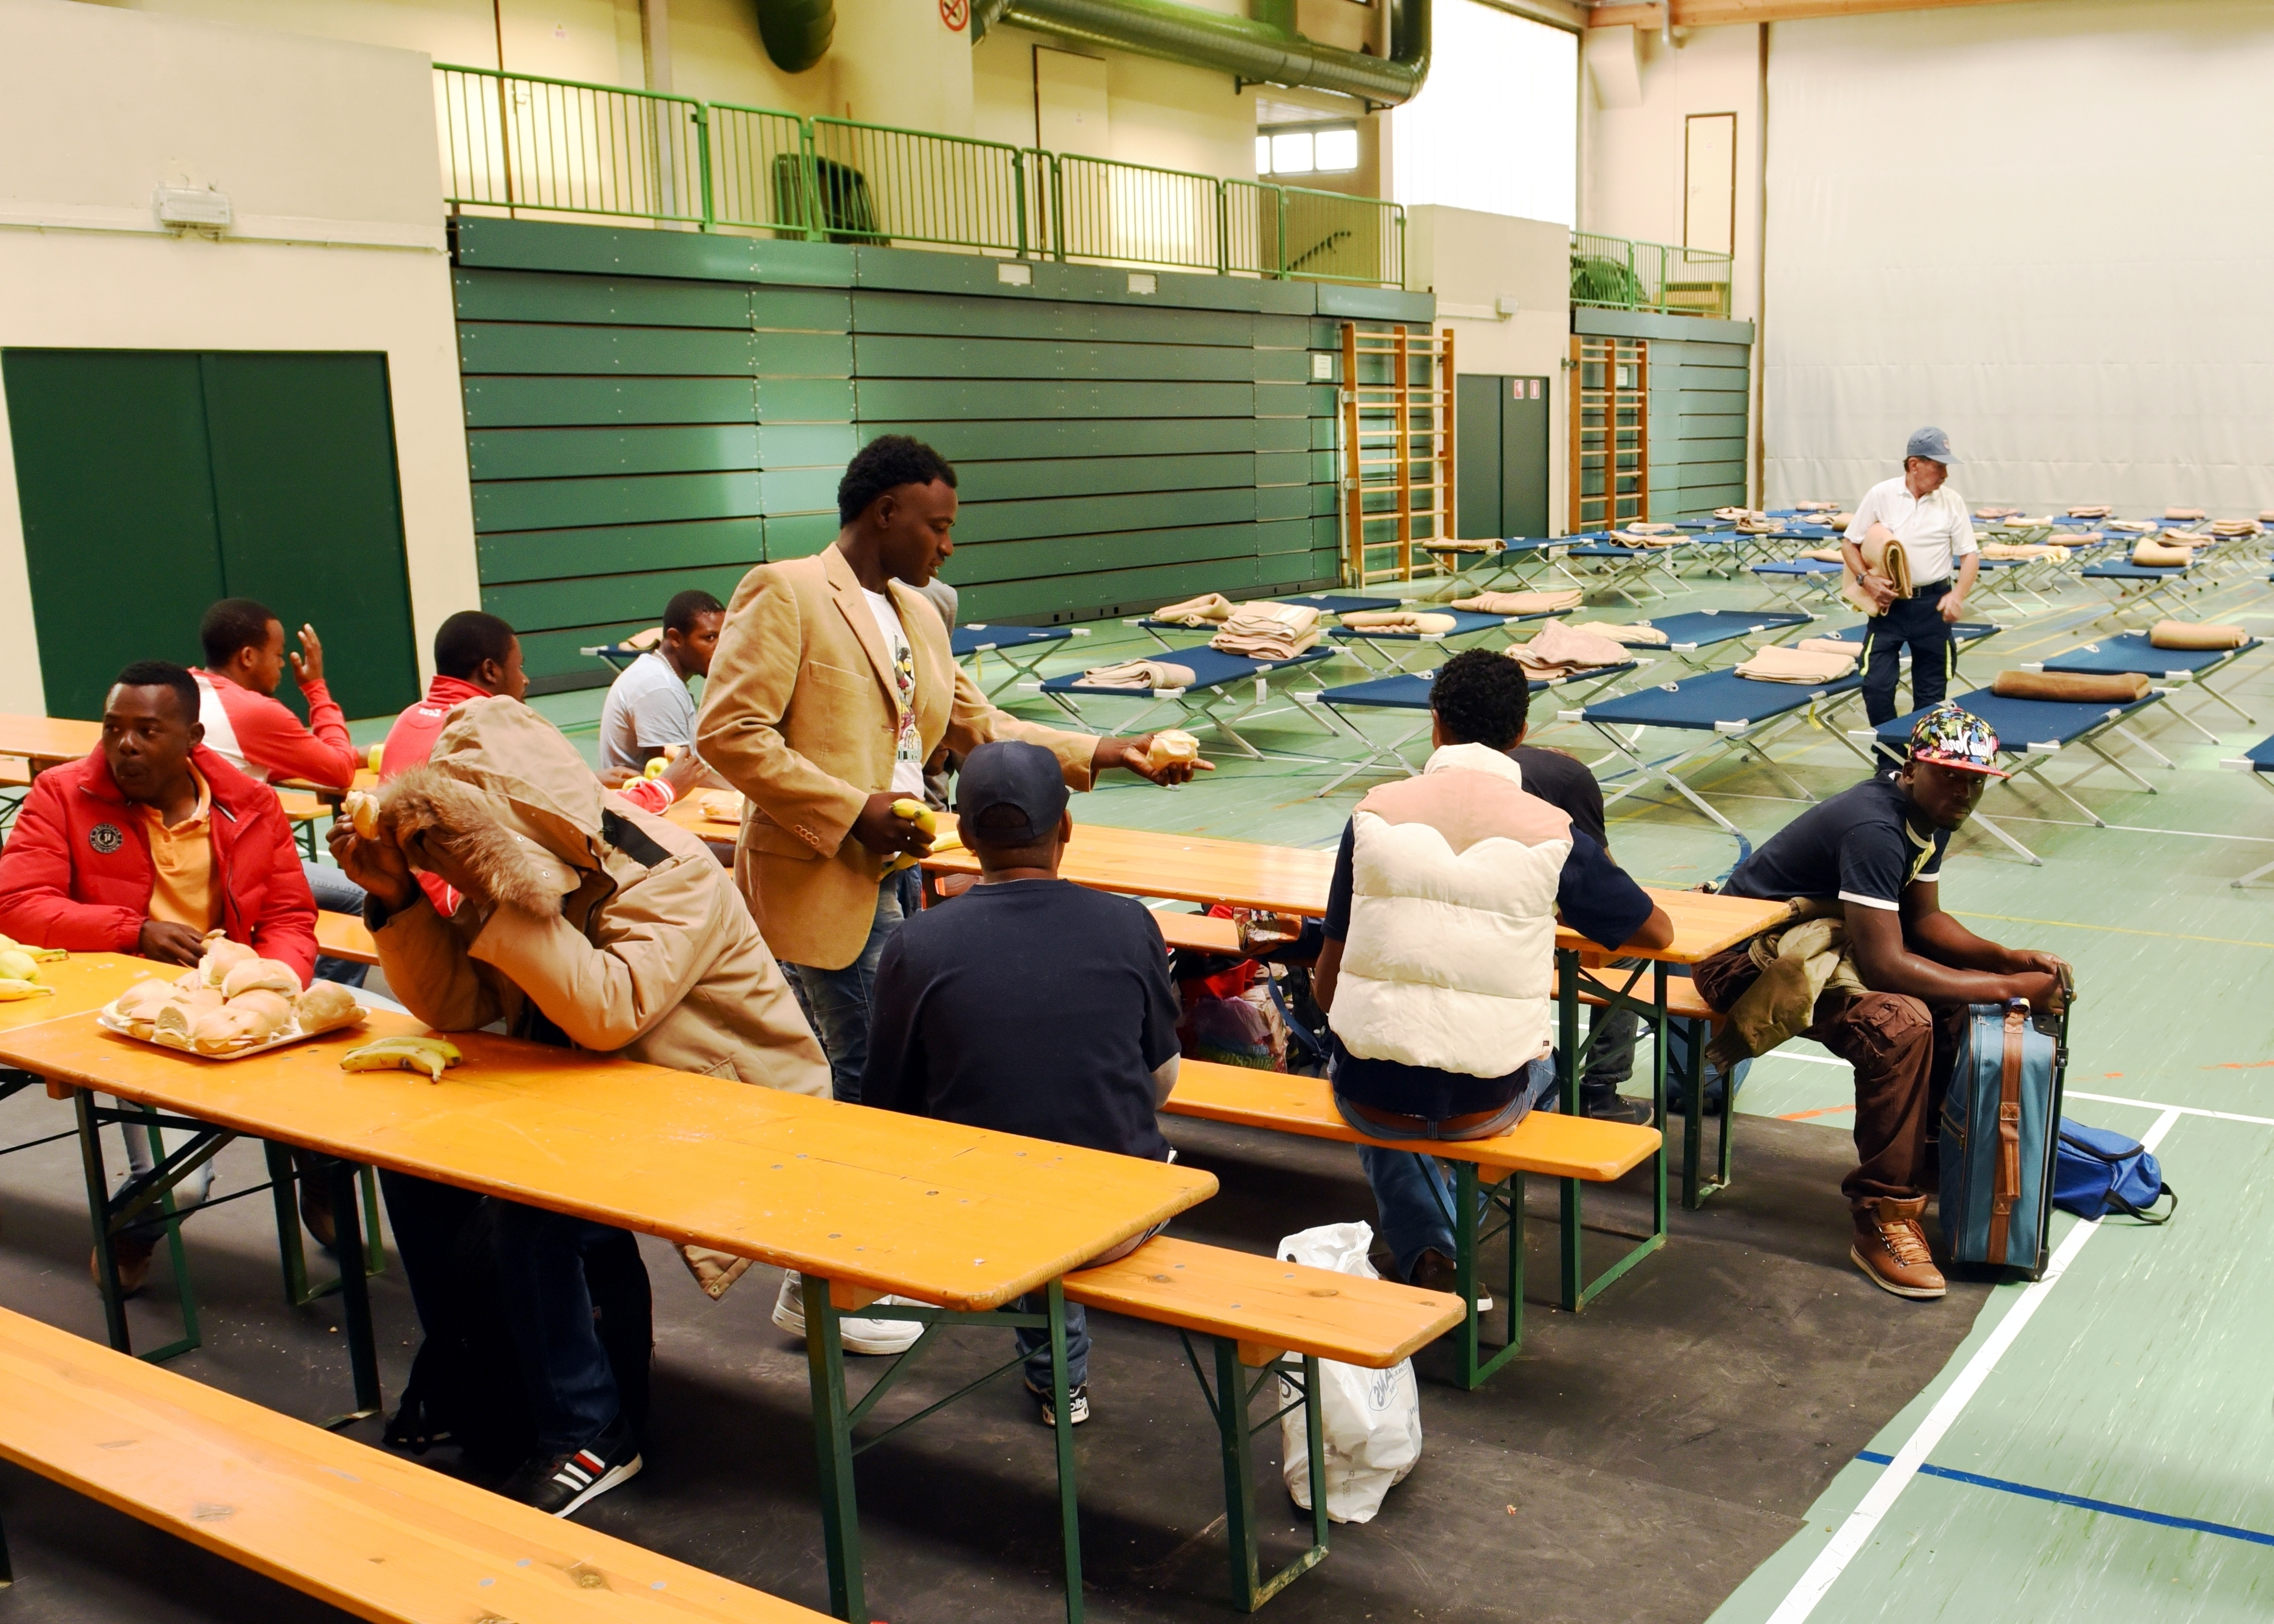 A group of men sit at tables inside a gym.